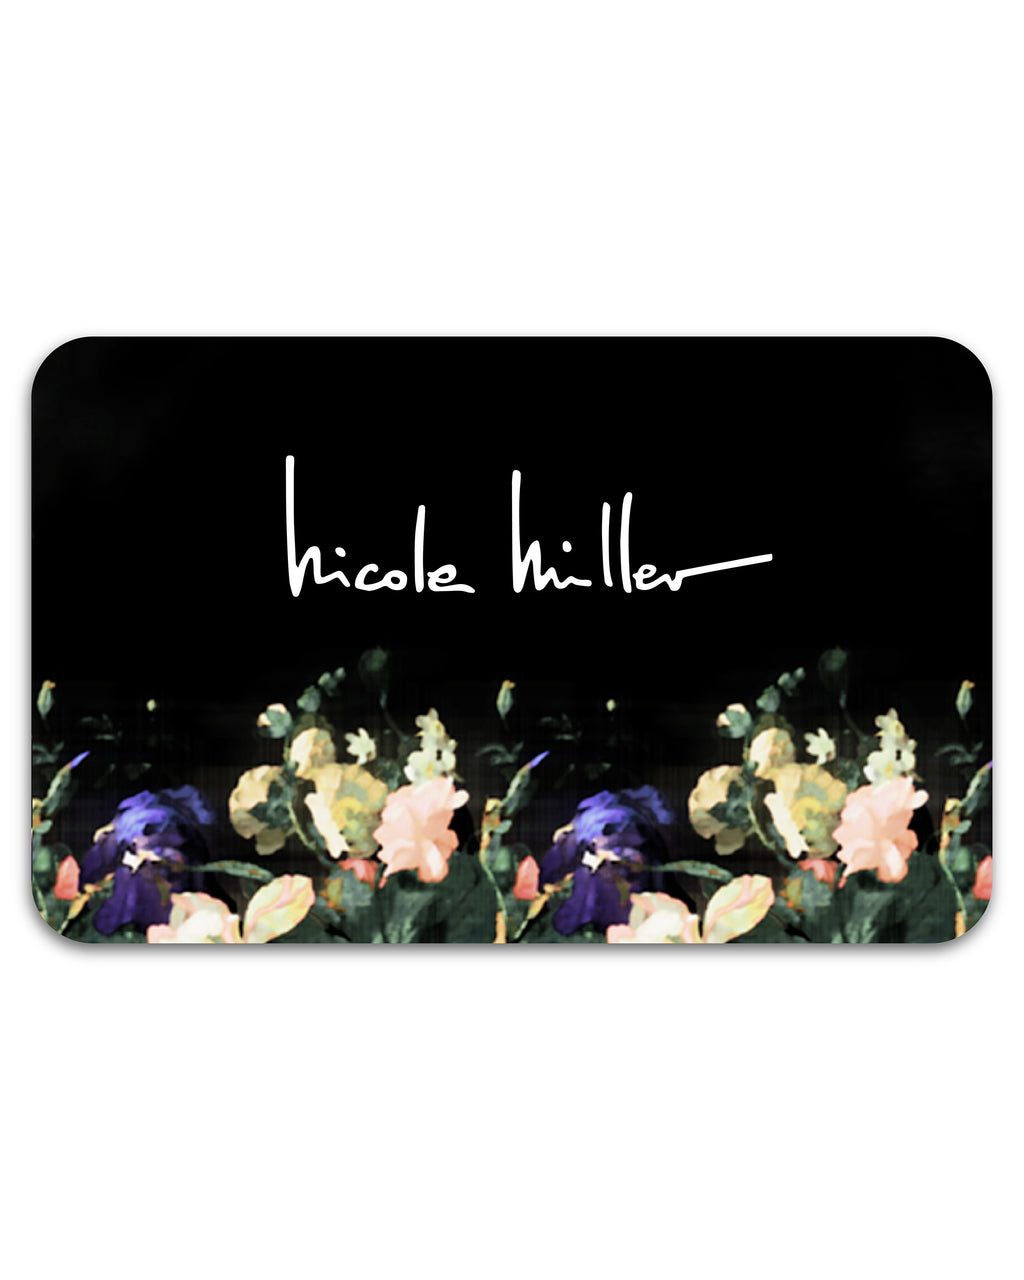 $100 Nicole Miller E-gift Card Image 1